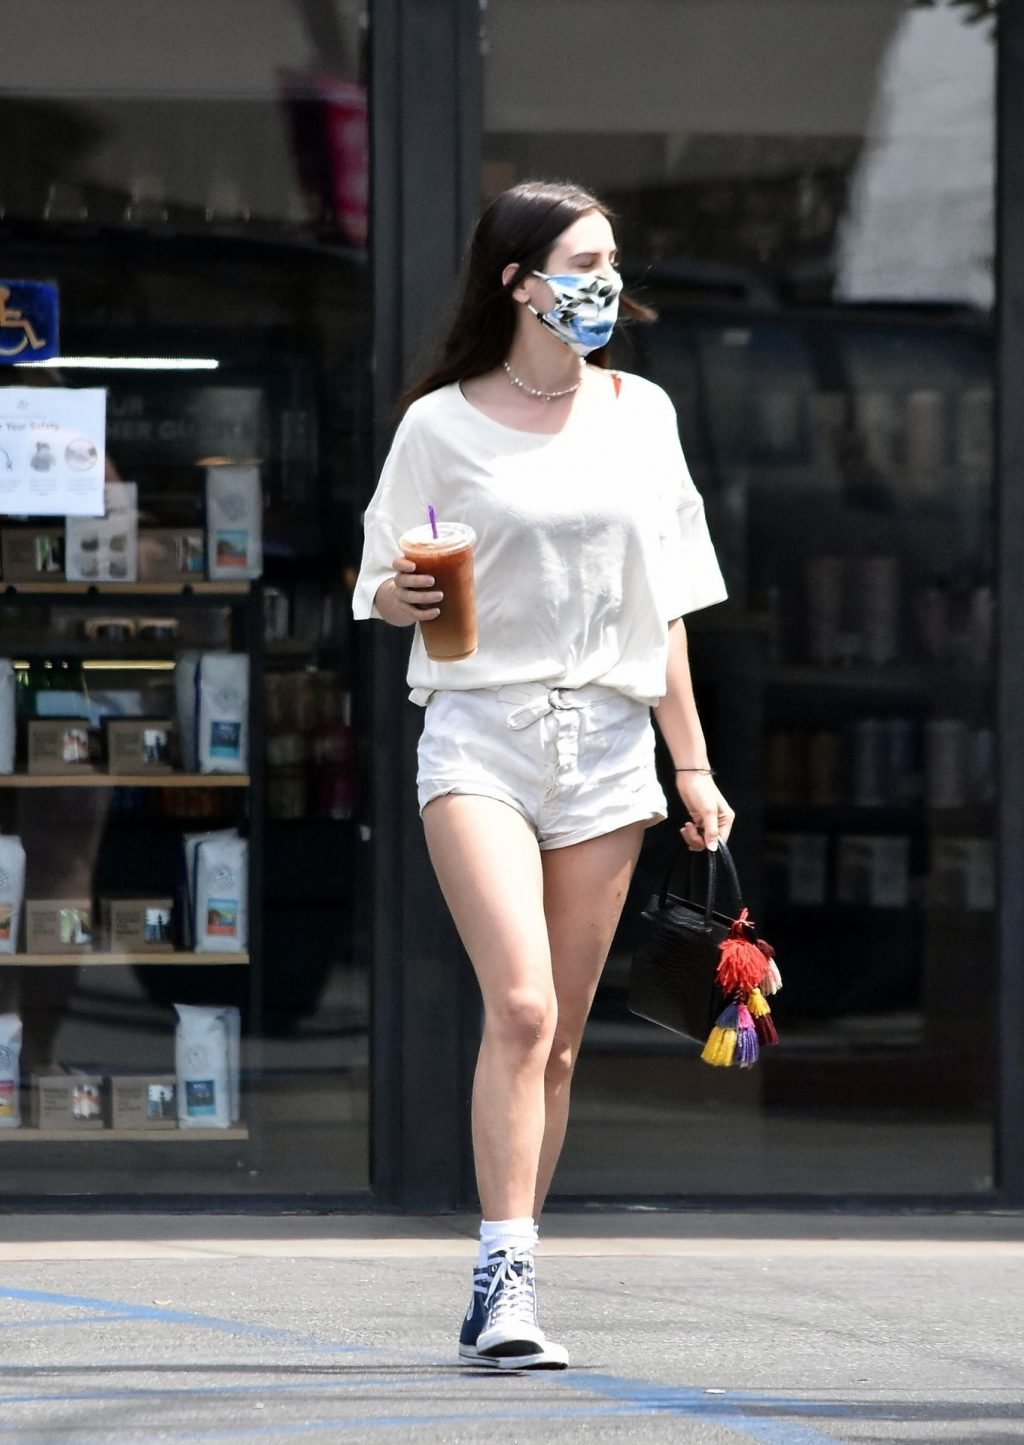 Sexy Scout Willis Gets Her Iced Coffee with a Floral Mask (39 Photos)